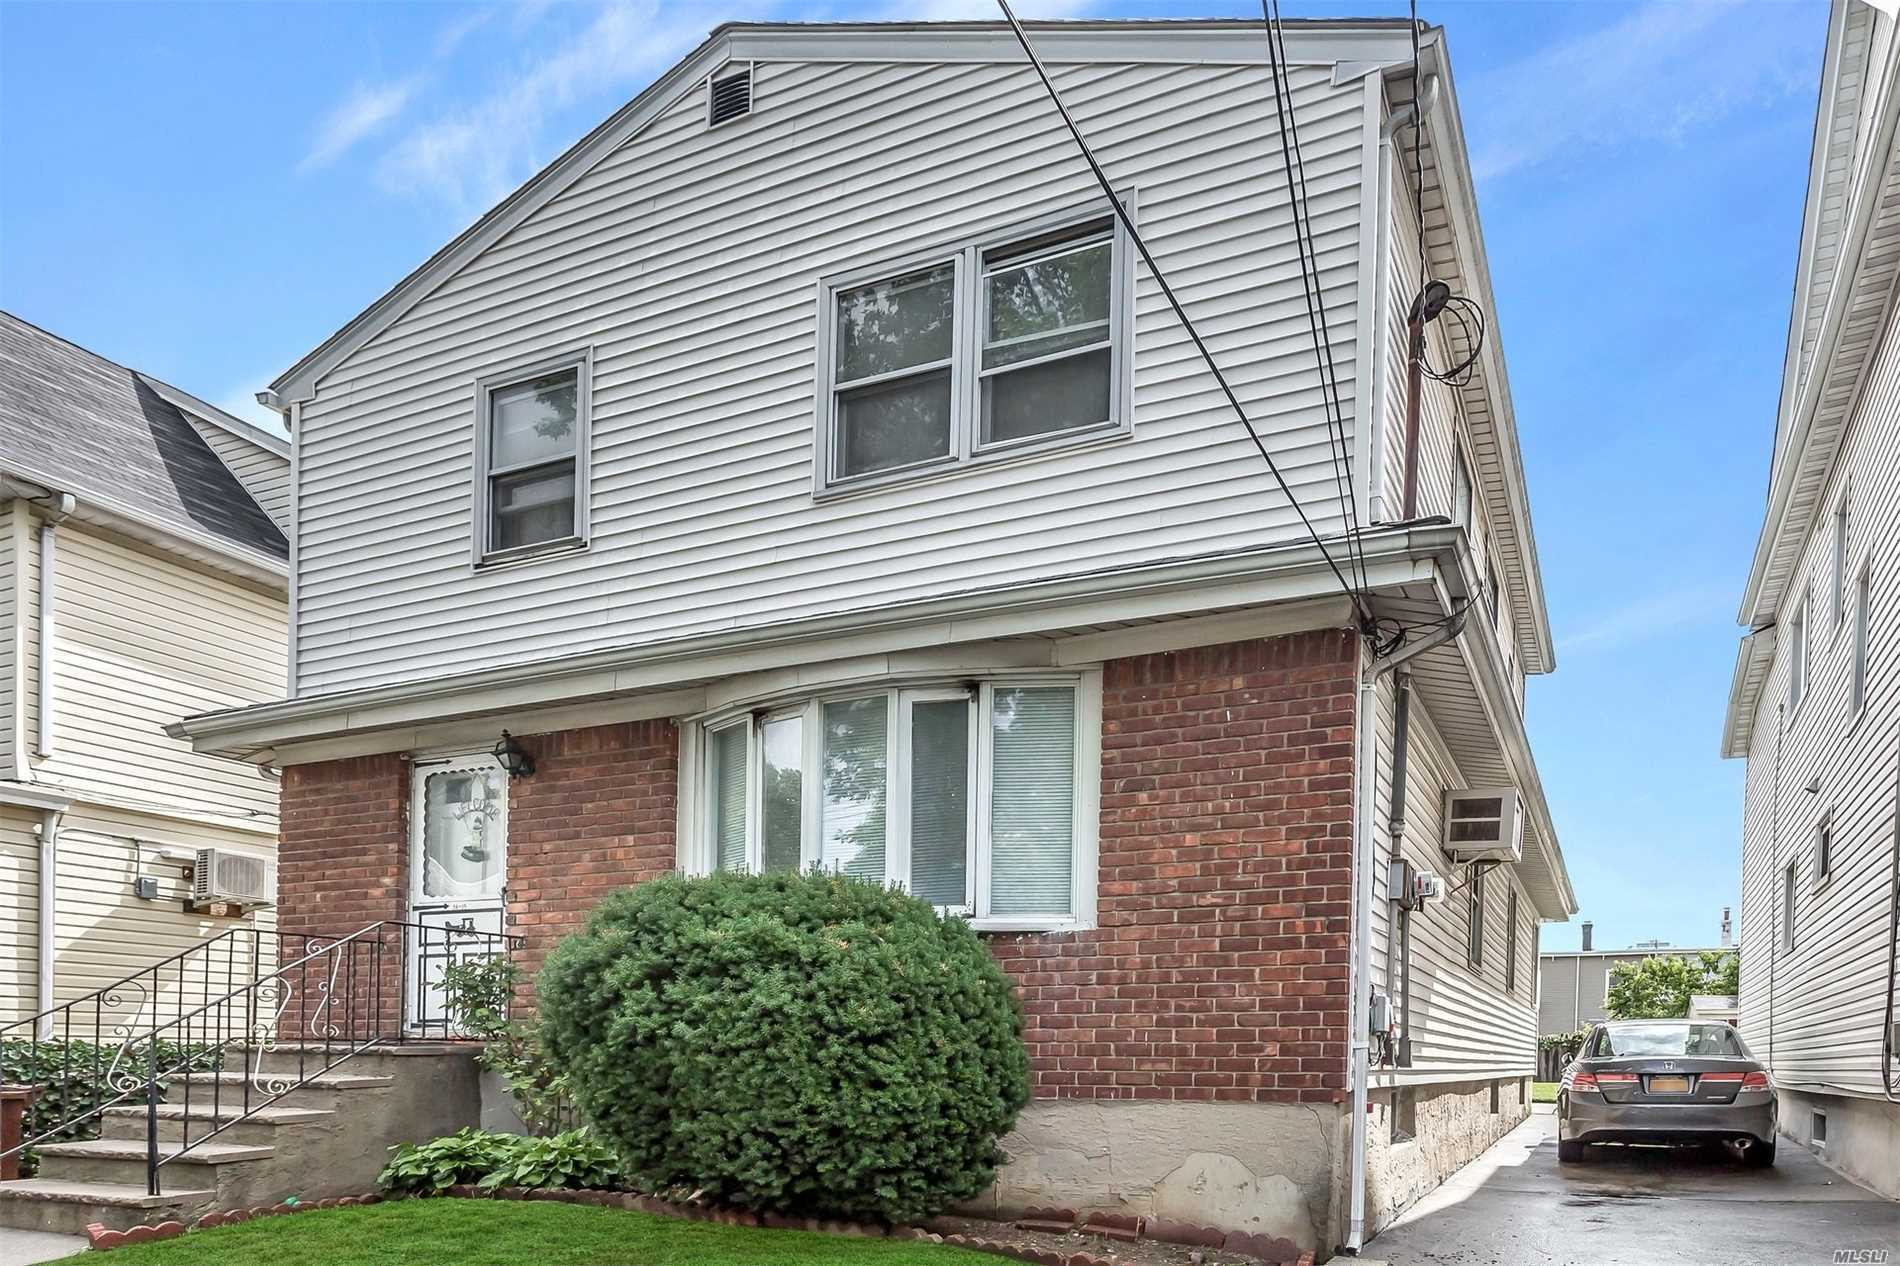 Duplex Each W/2 Br, Eik, Full Bth. Private Driveway! Fully Fenced Property W/ Lovely Yard, Across From Park/Playground. Full Basement